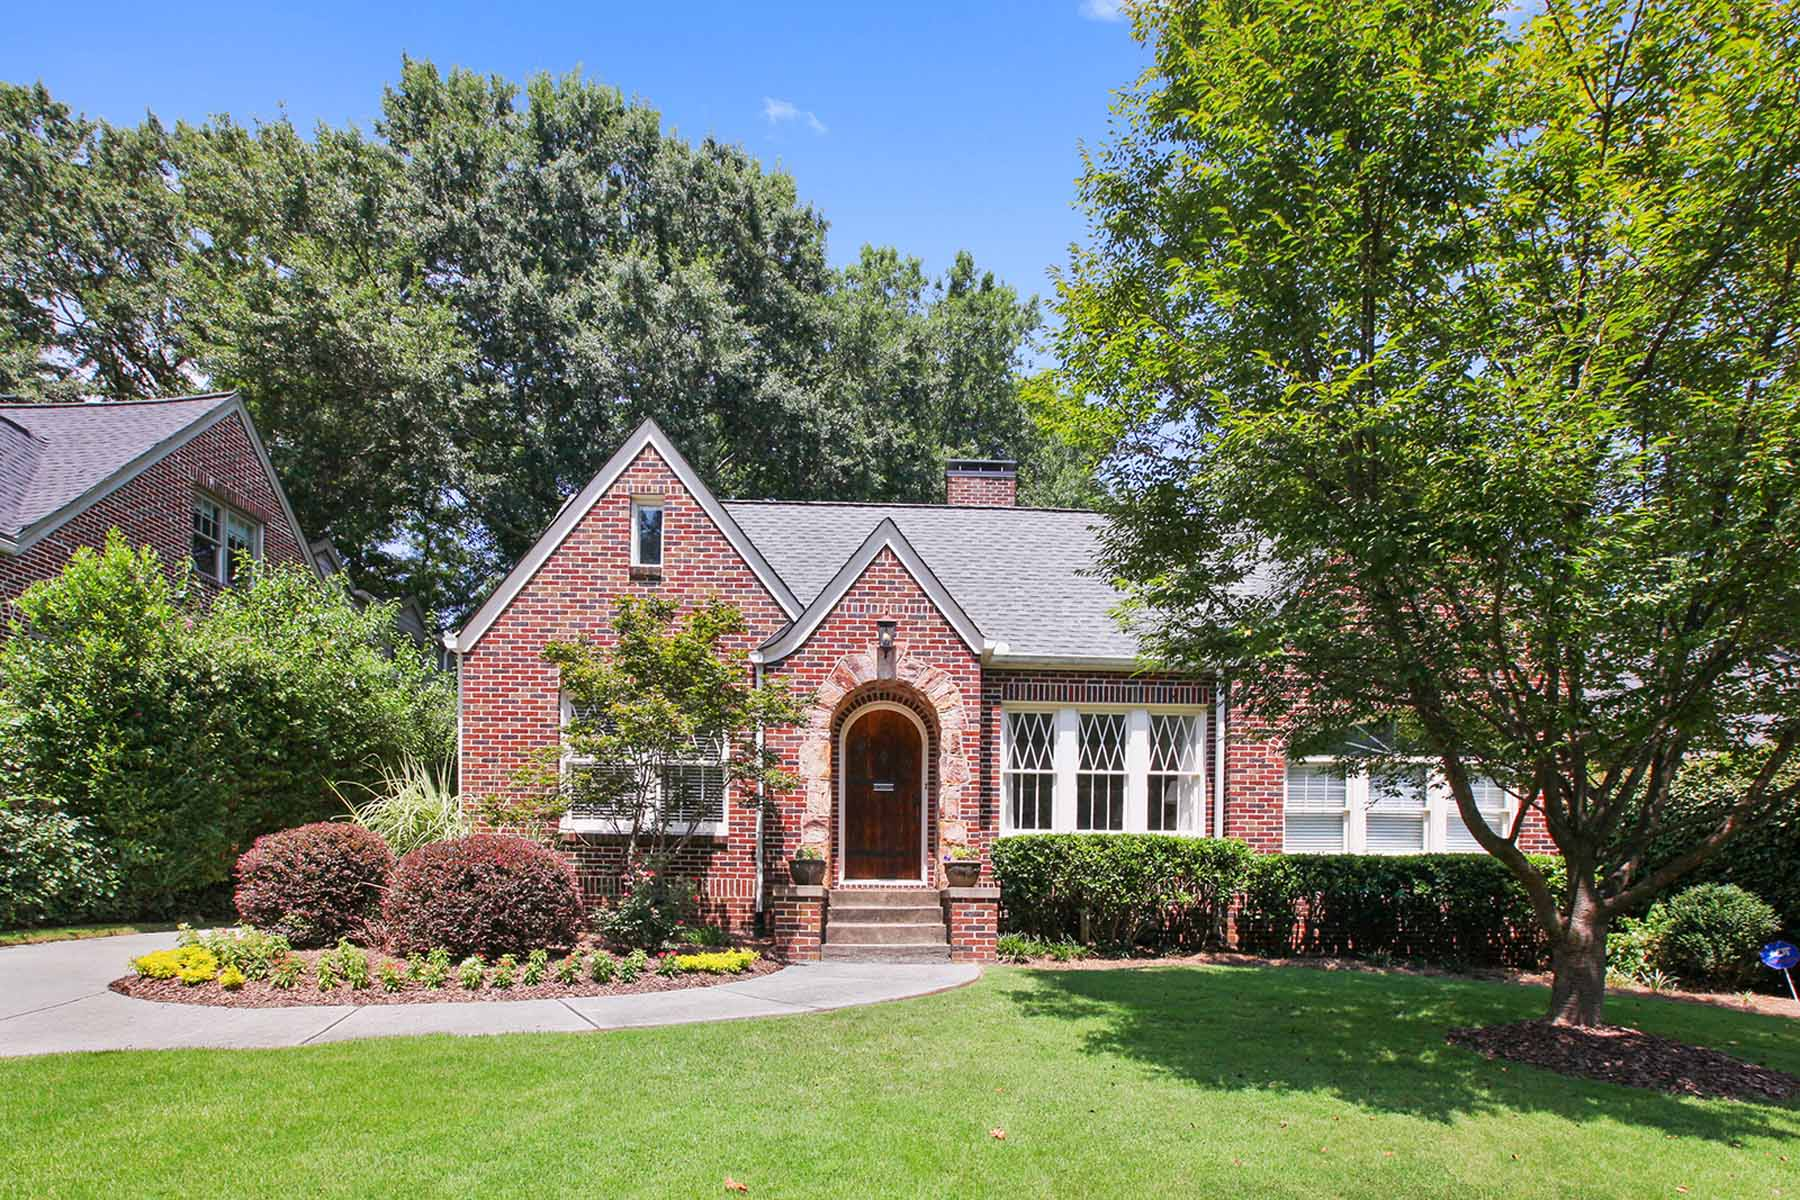 独户住宅 为 销售 在 Morningside Classic with excellent location. 1138 Zimmer Drive Morningside, Atlanta, 乔治亚州 30306 美国